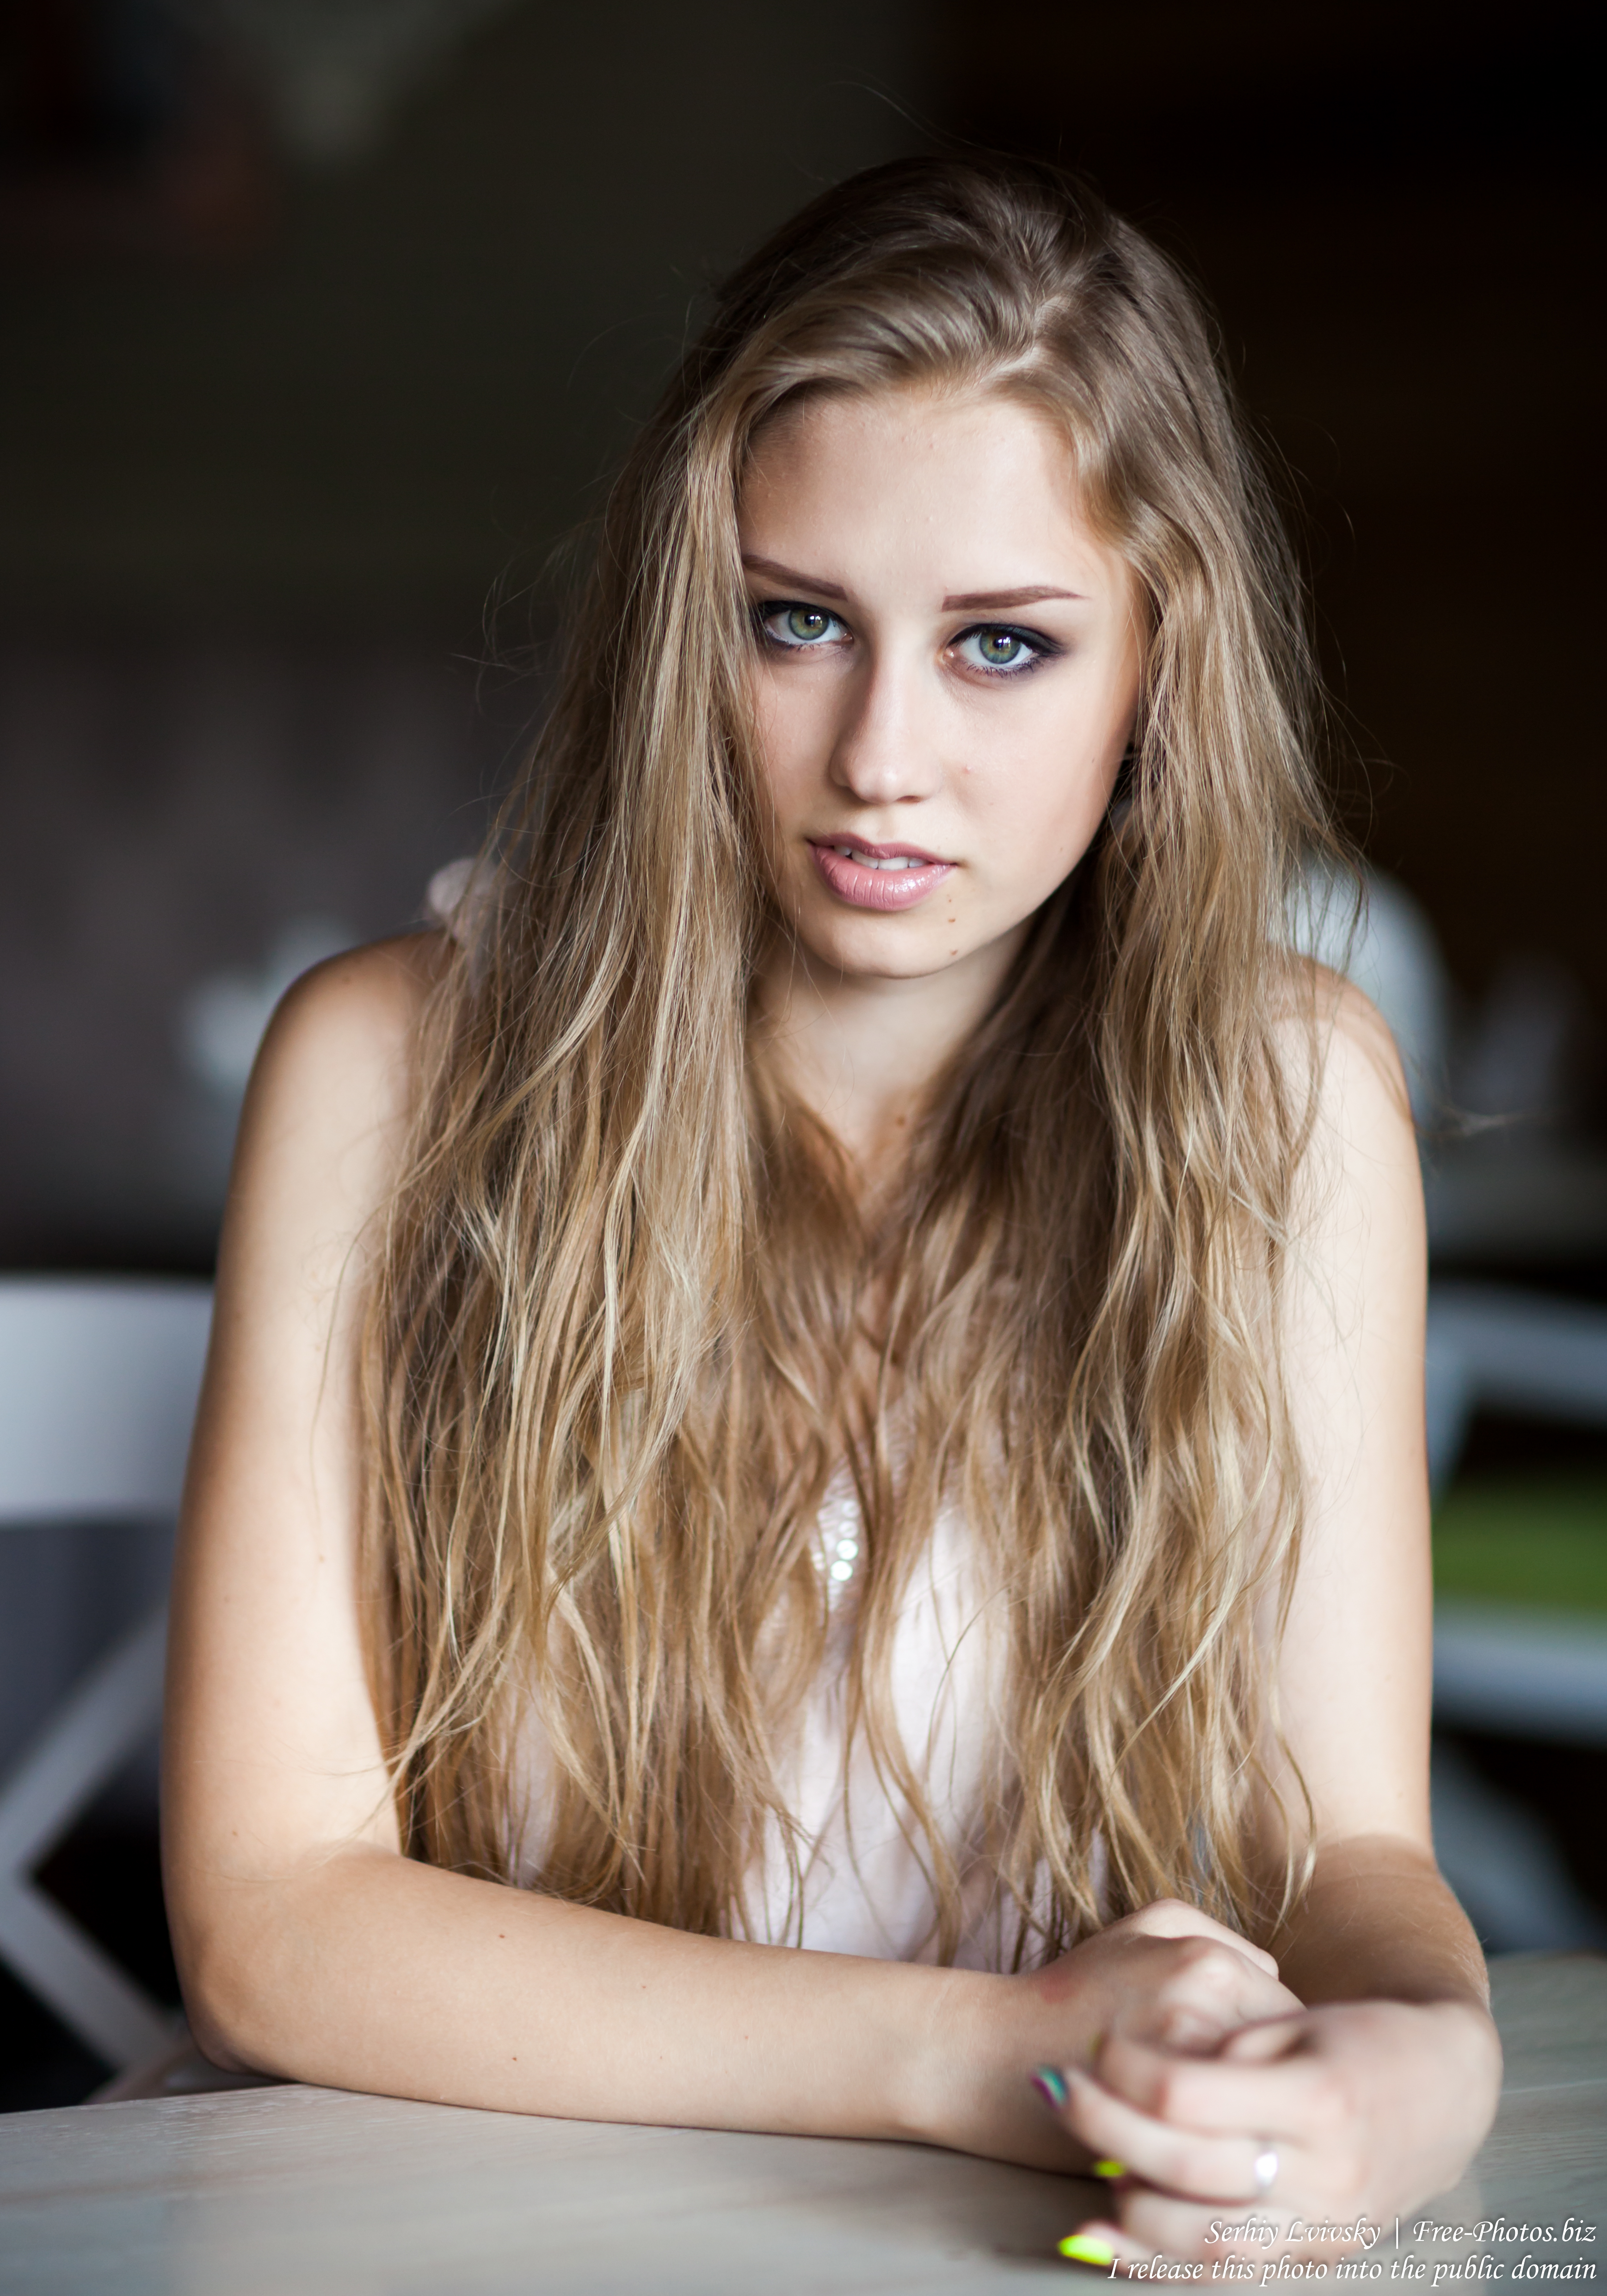 a 16-year-old natural blonde girl photographed in August 2016 by Serhiy Lvivsky, picture 17